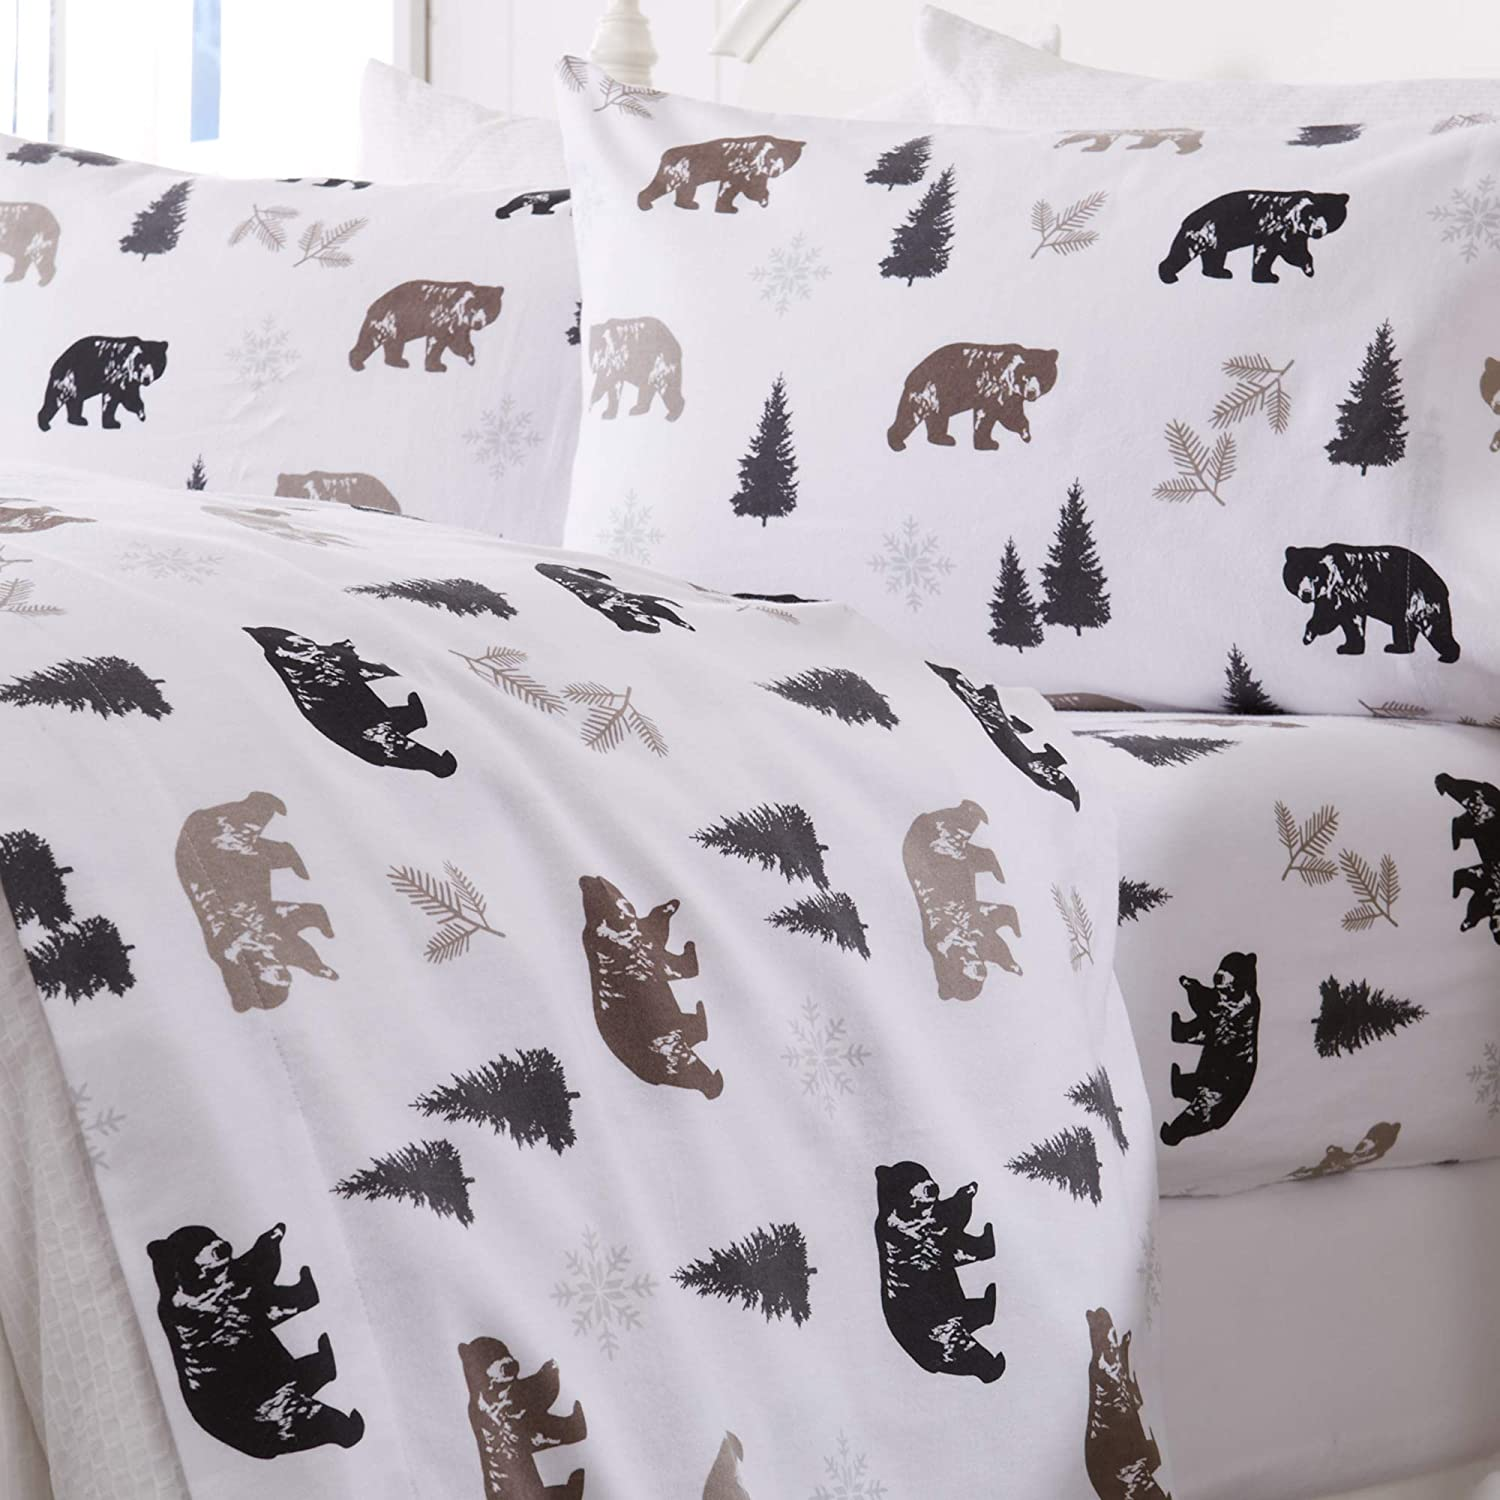 Great Bay Home Extra Soft Printed 100% Turkish Cotton Flannel Sheet Set. Warm, Cozy, Luxury Winter Bed Sheets. Lakeview Collection (King, Rustic Bear)